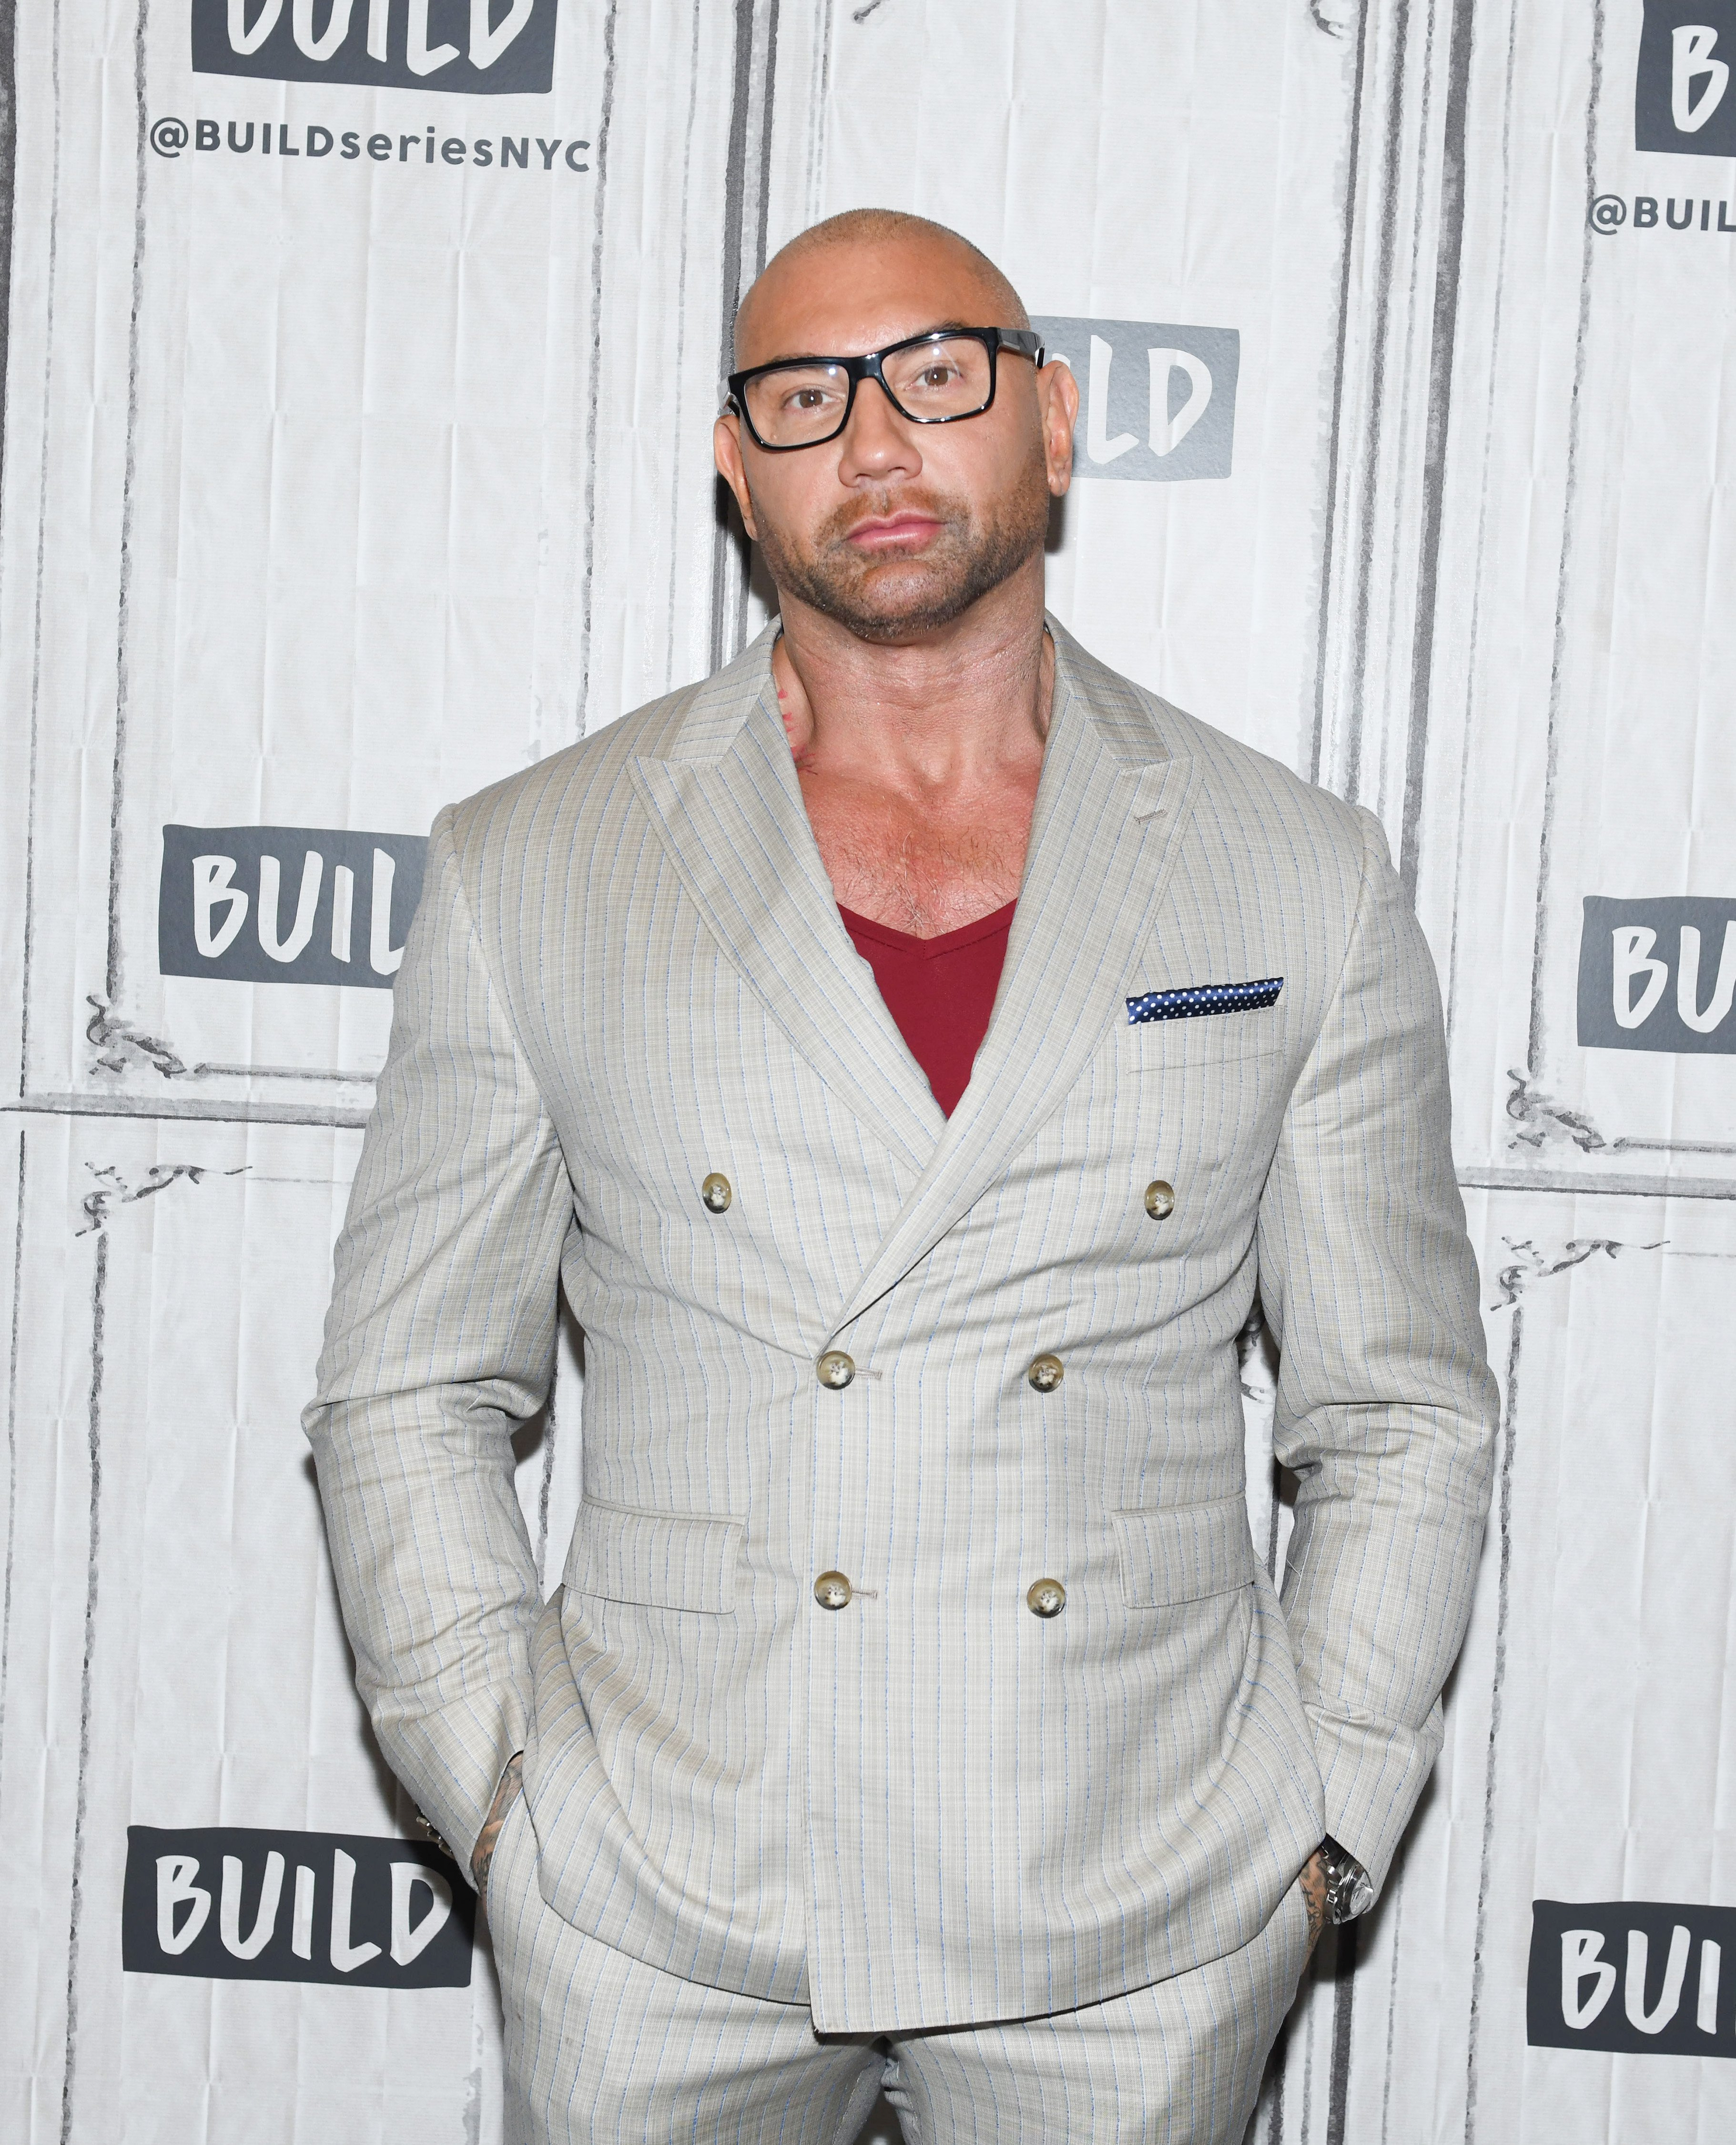 Dave Bautista attends the Build Series event in New York City in 2019.   Photo: Getty Images